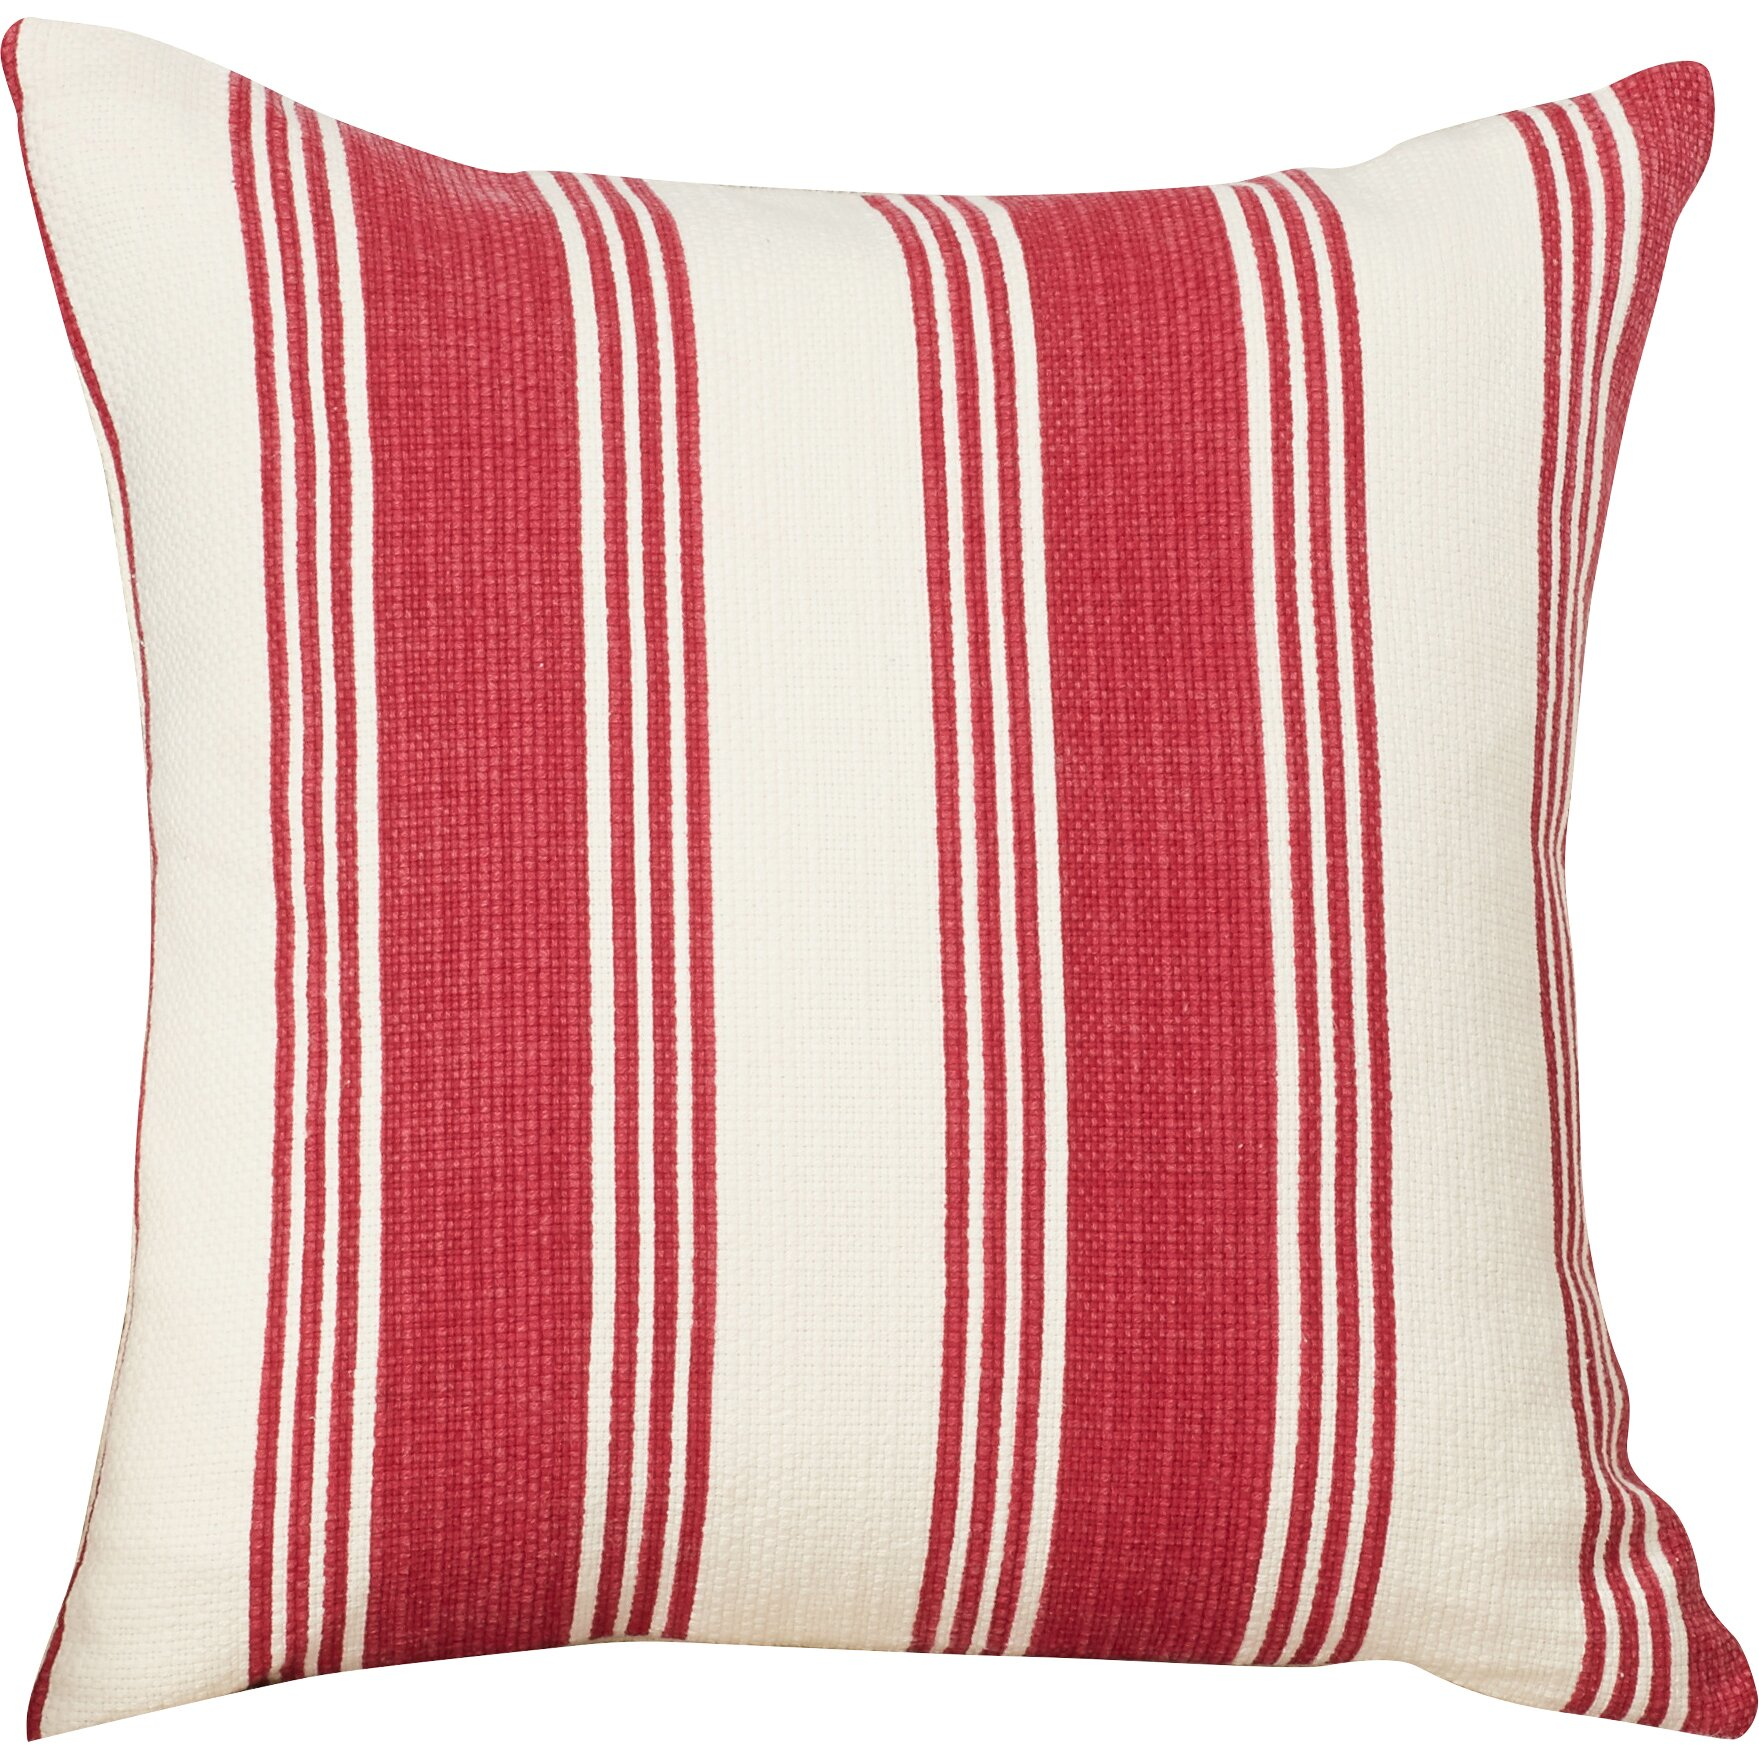 Throw Pillows The Bay : Darby Home Co Fagan Cotton Throw Pillow & Reviews Wayfair